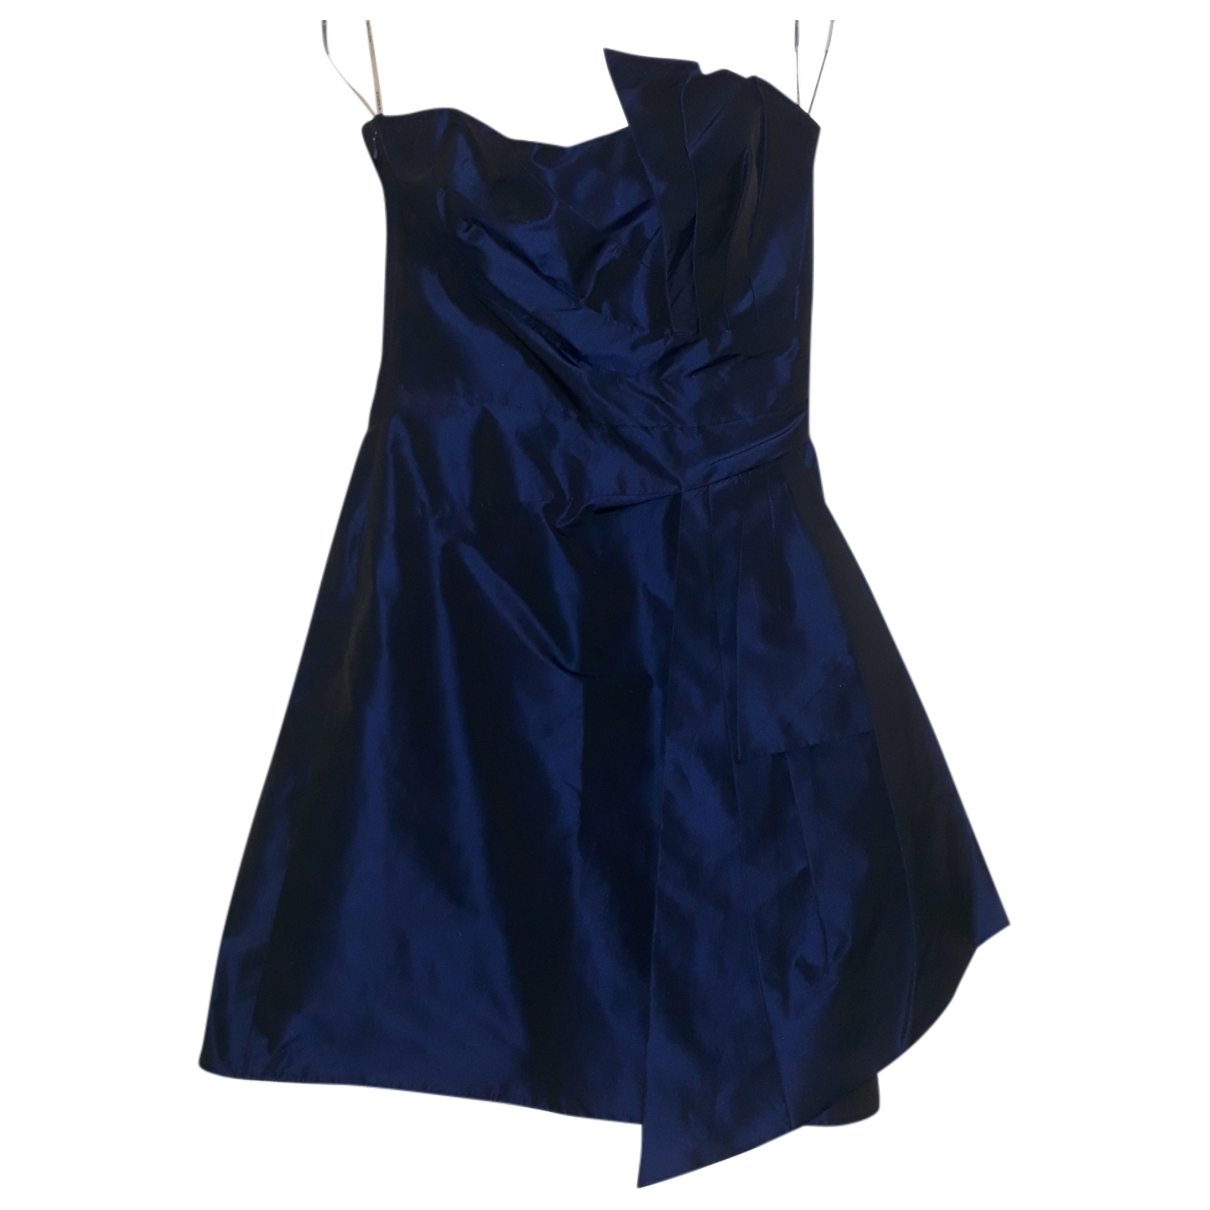 Karen Millen \N Blue dress for Women 8 UK